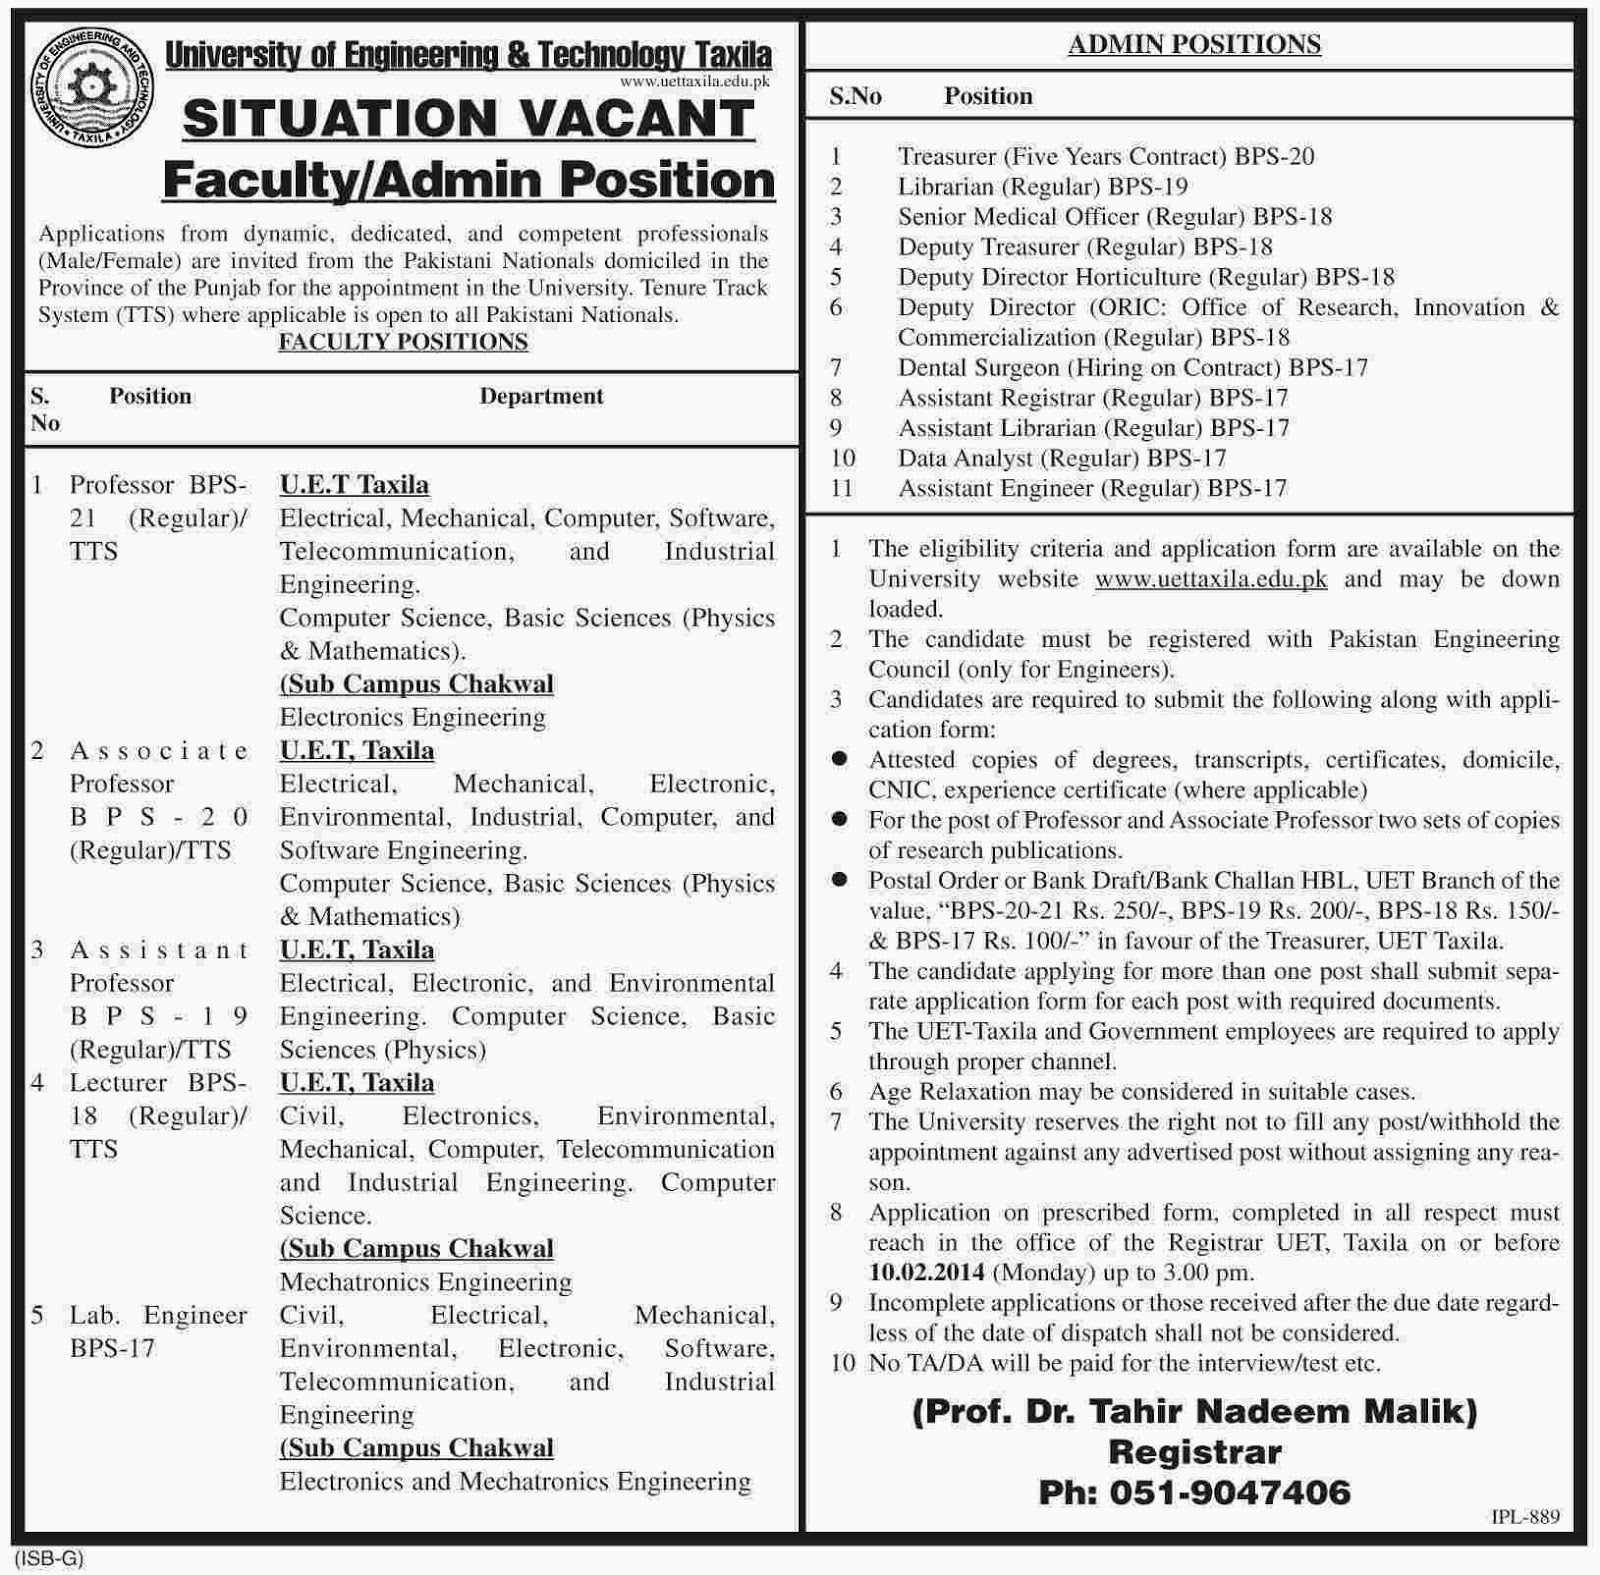 Vacancies in University of Engineering and Technology Taxila, Punjab